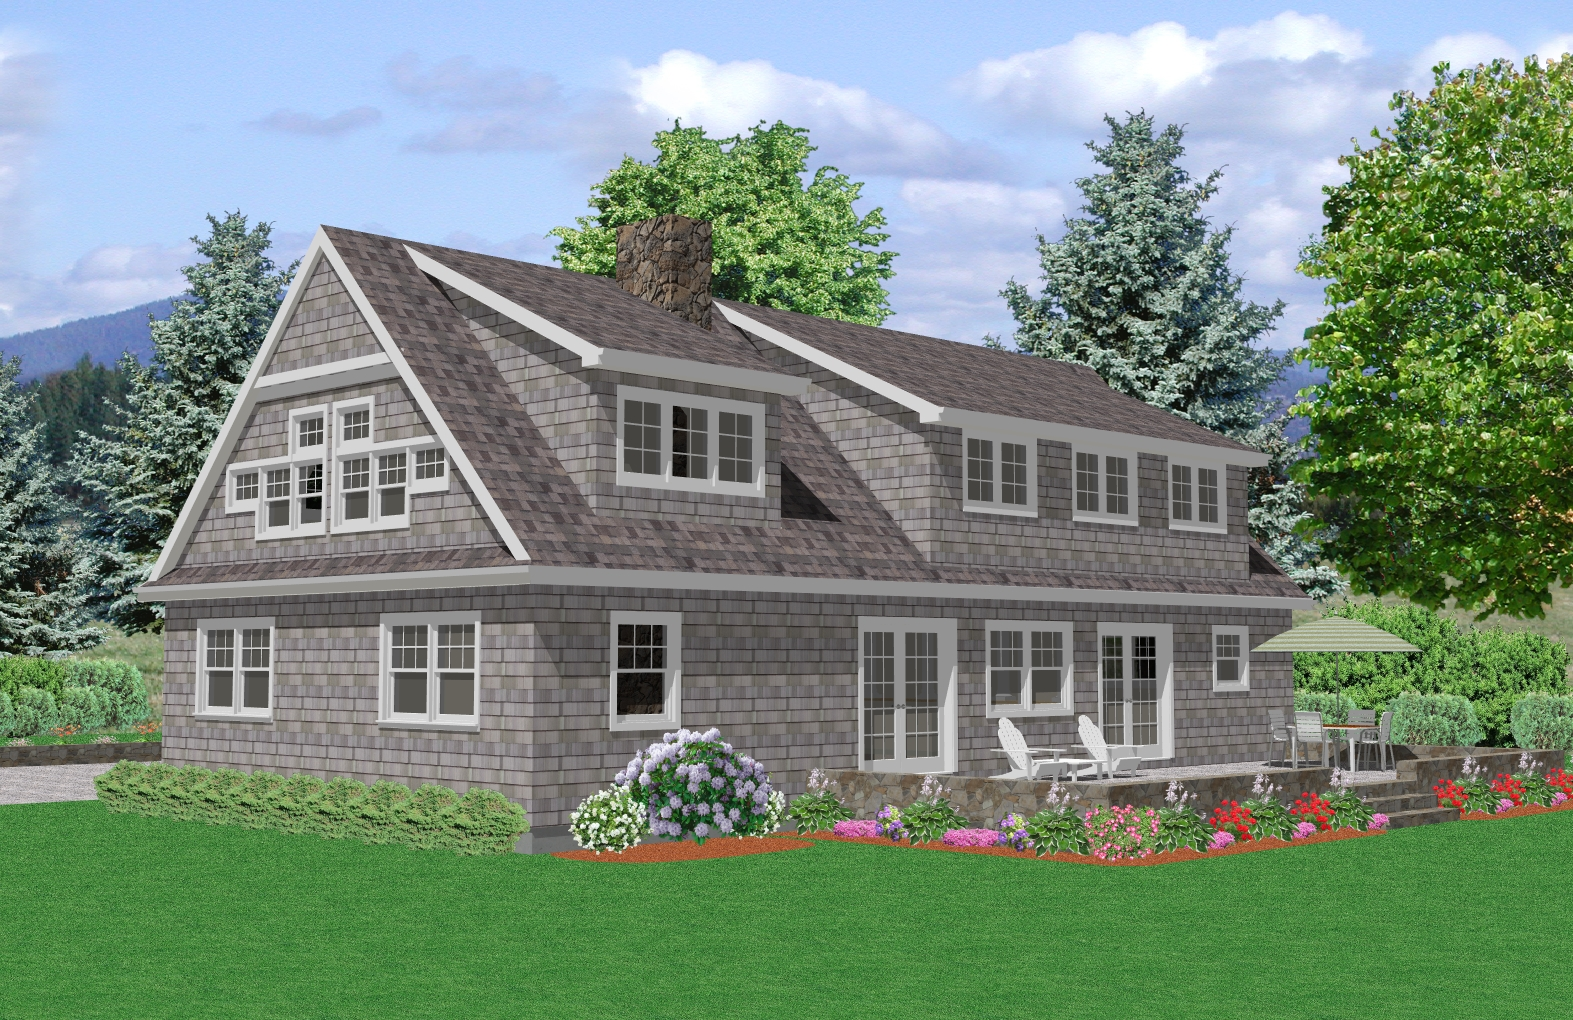 Cape cod house plans open floor plan cape cod house plans for Cape code house plans